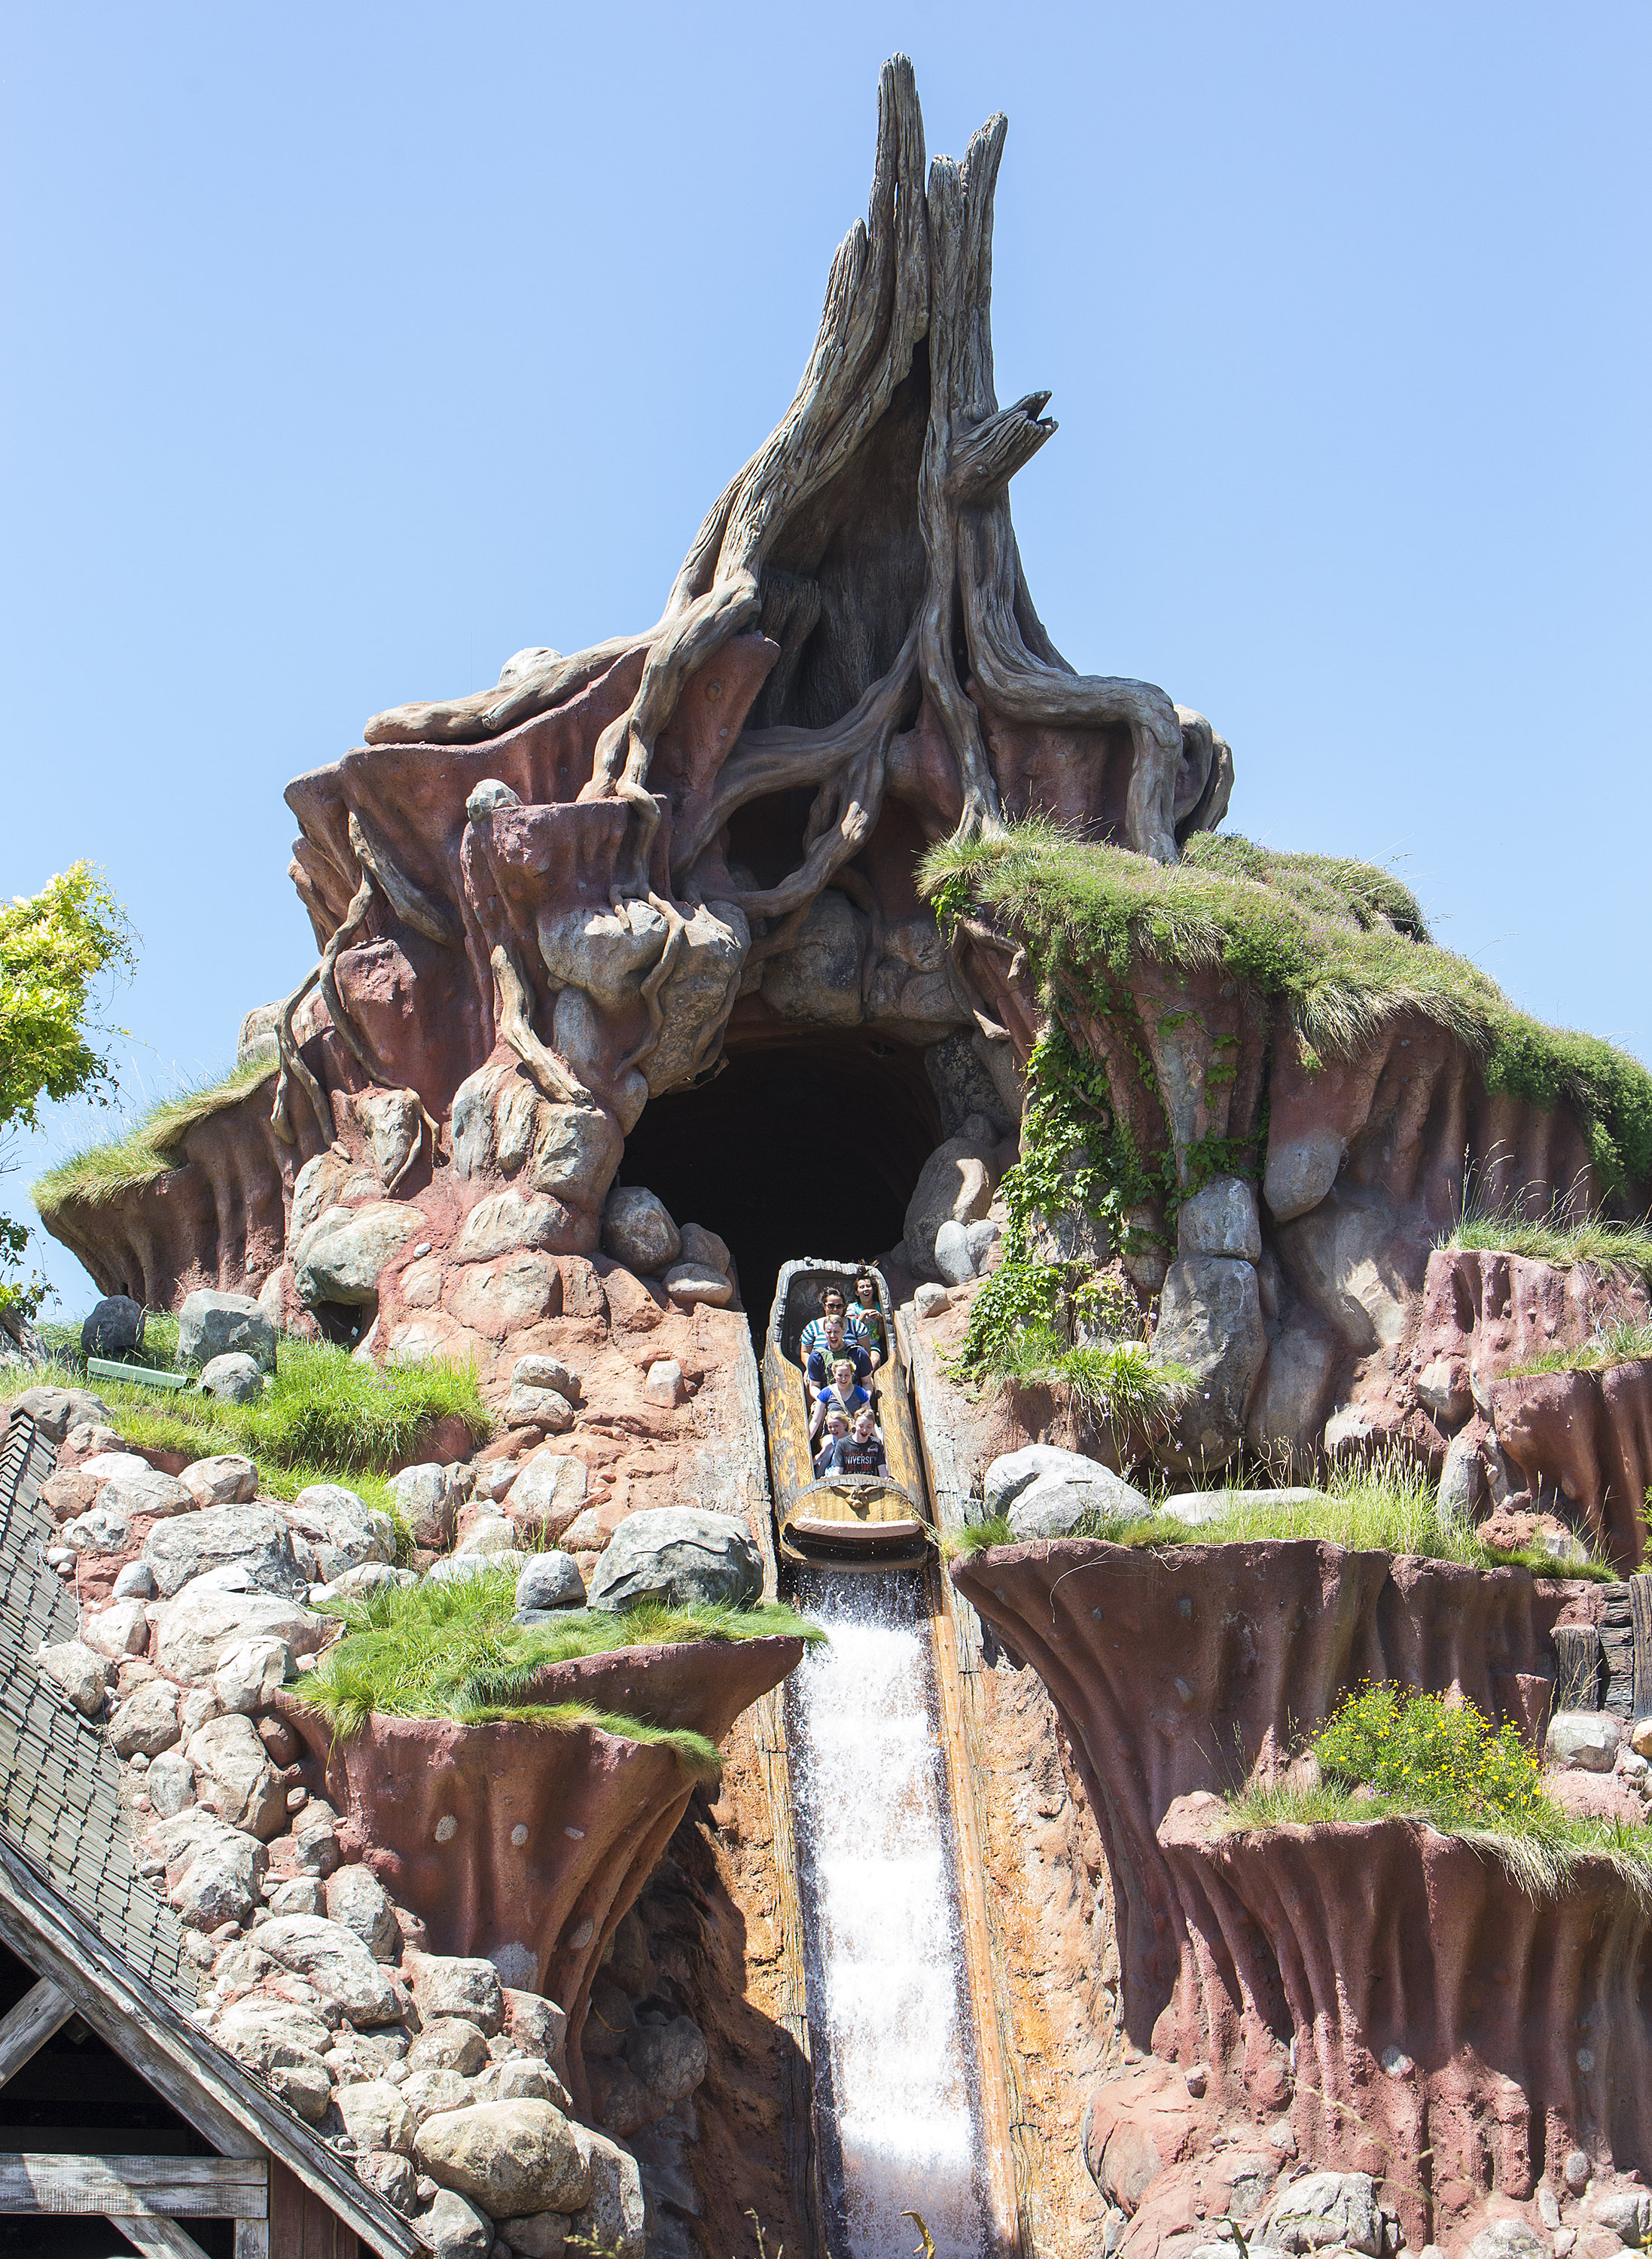 """Guests take a plunge down a 5-story waterfall on Splash Mountain in Critter Country at Disneyland park in Anaheim, Calif. The rollicking log flume ride is based on the animated characters and sequences from the classic Disney film, """"Song of the South.""""(Paul Hiffmeyer/Disneyland Resort)"""